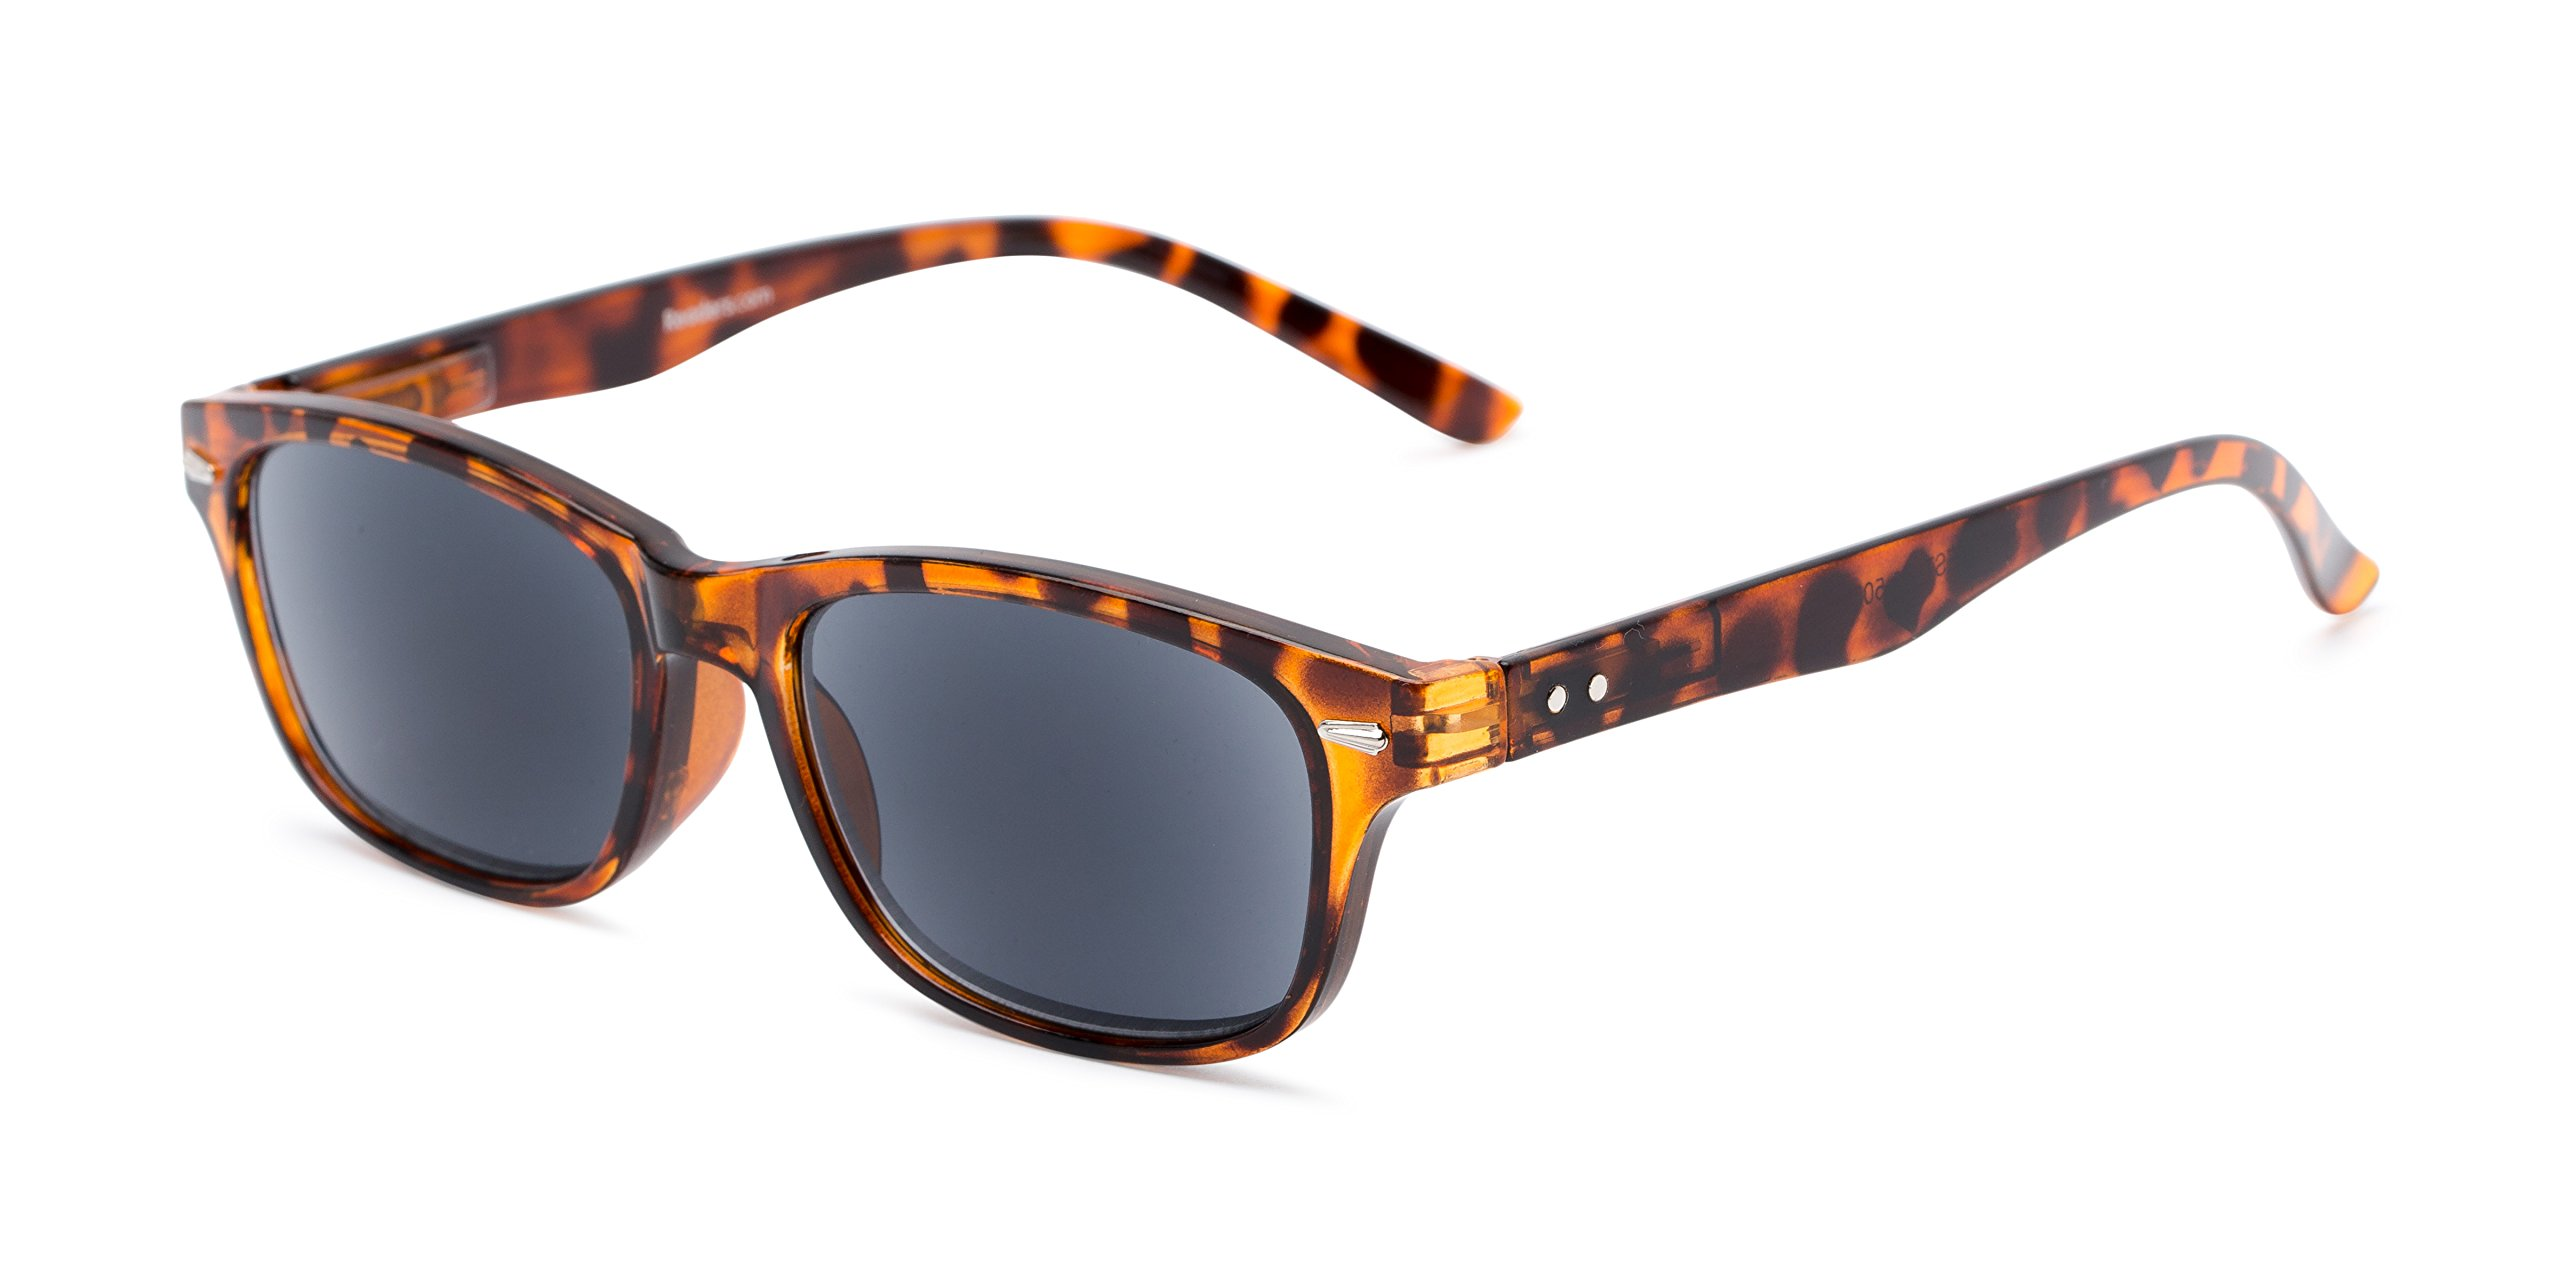 Readers.com   The Key West Sun Reader +1.25 Tortoise with Smoke Reading Sunglasses